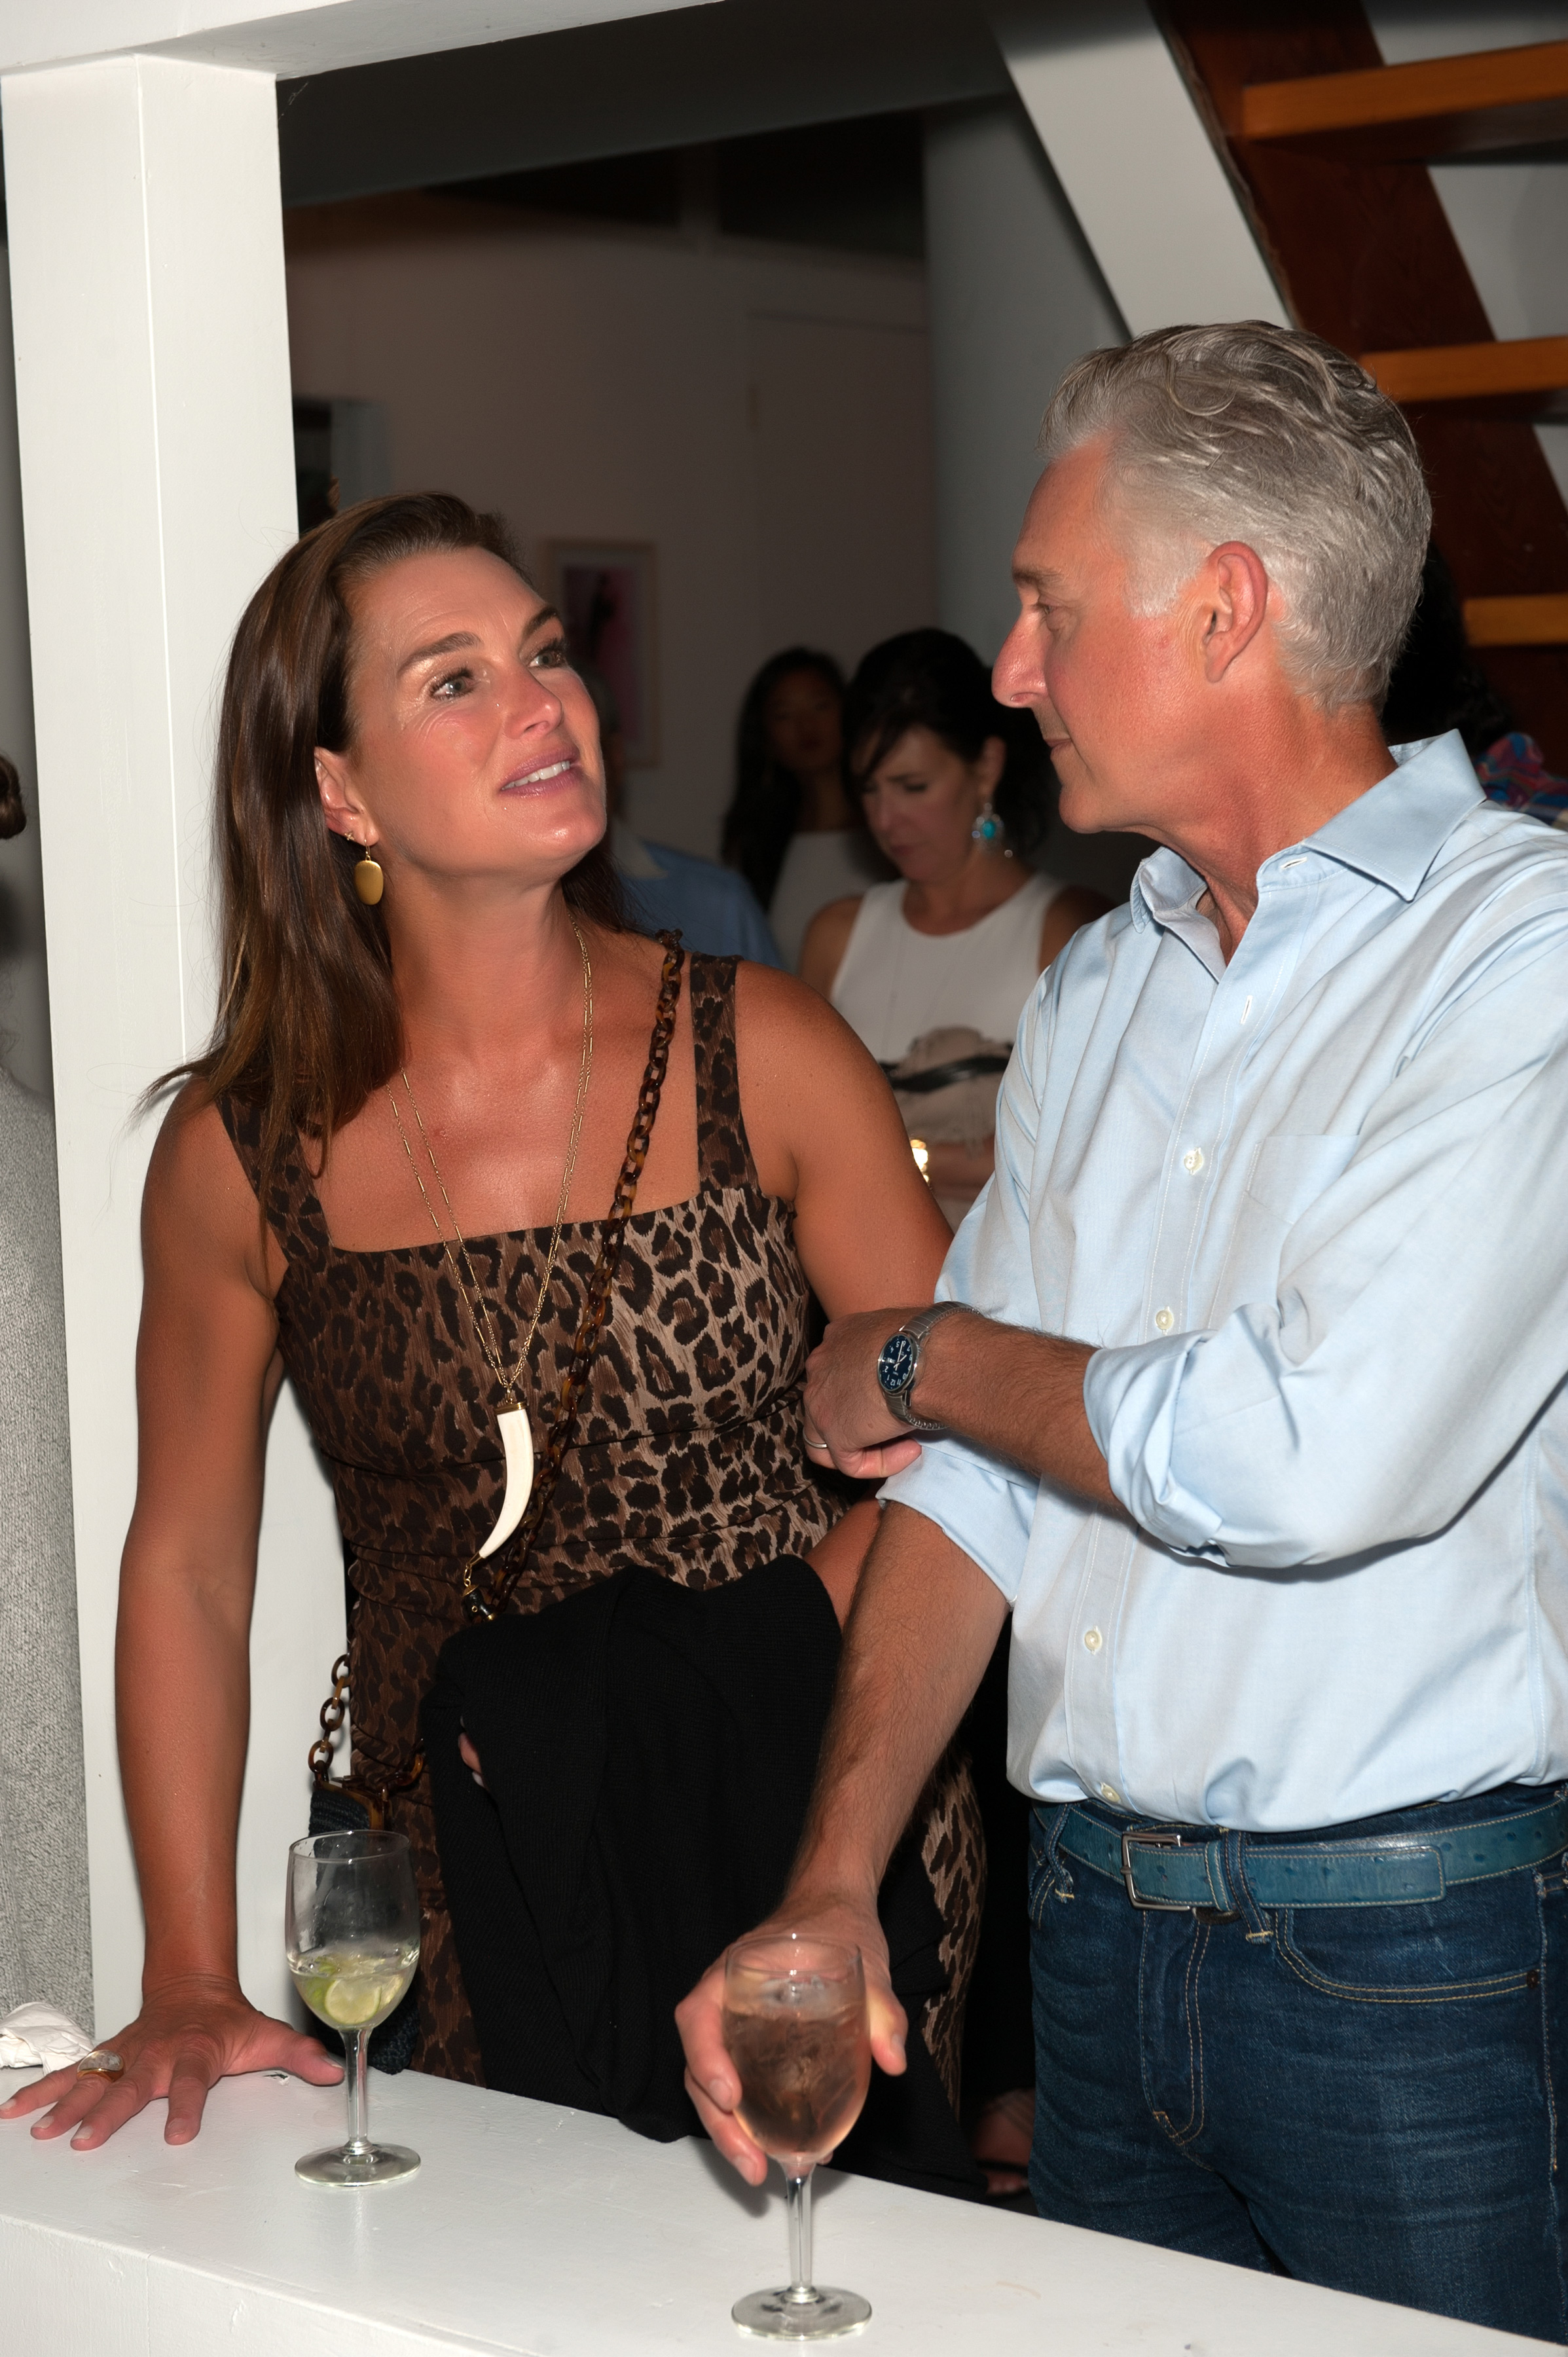 Brooke-Shields-and-David-Kratz,-Photo-by-Daniel-Gonzalez